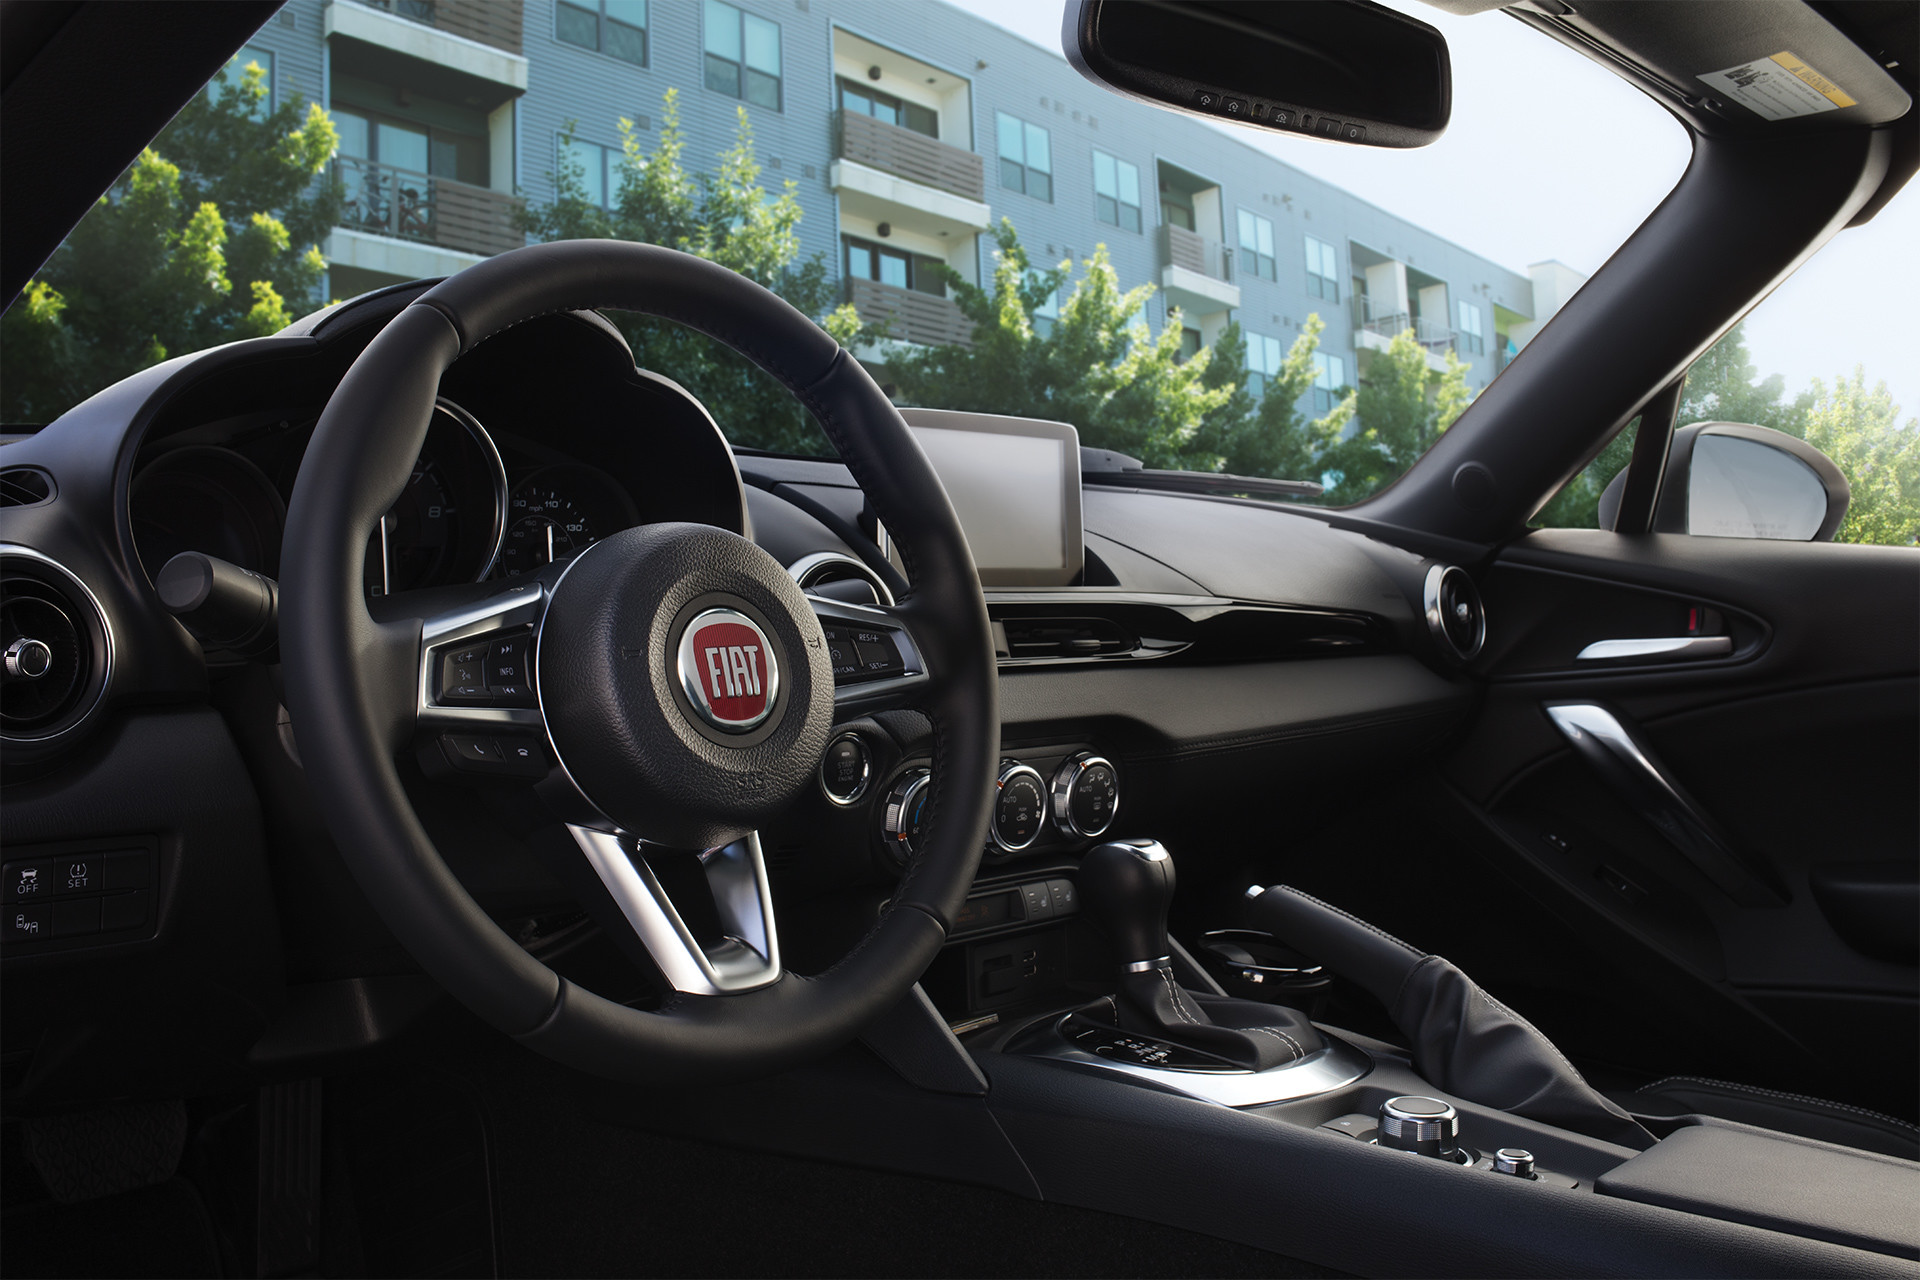 FIAT 124 Spider 2019 – photo de l'habitacle et de la console